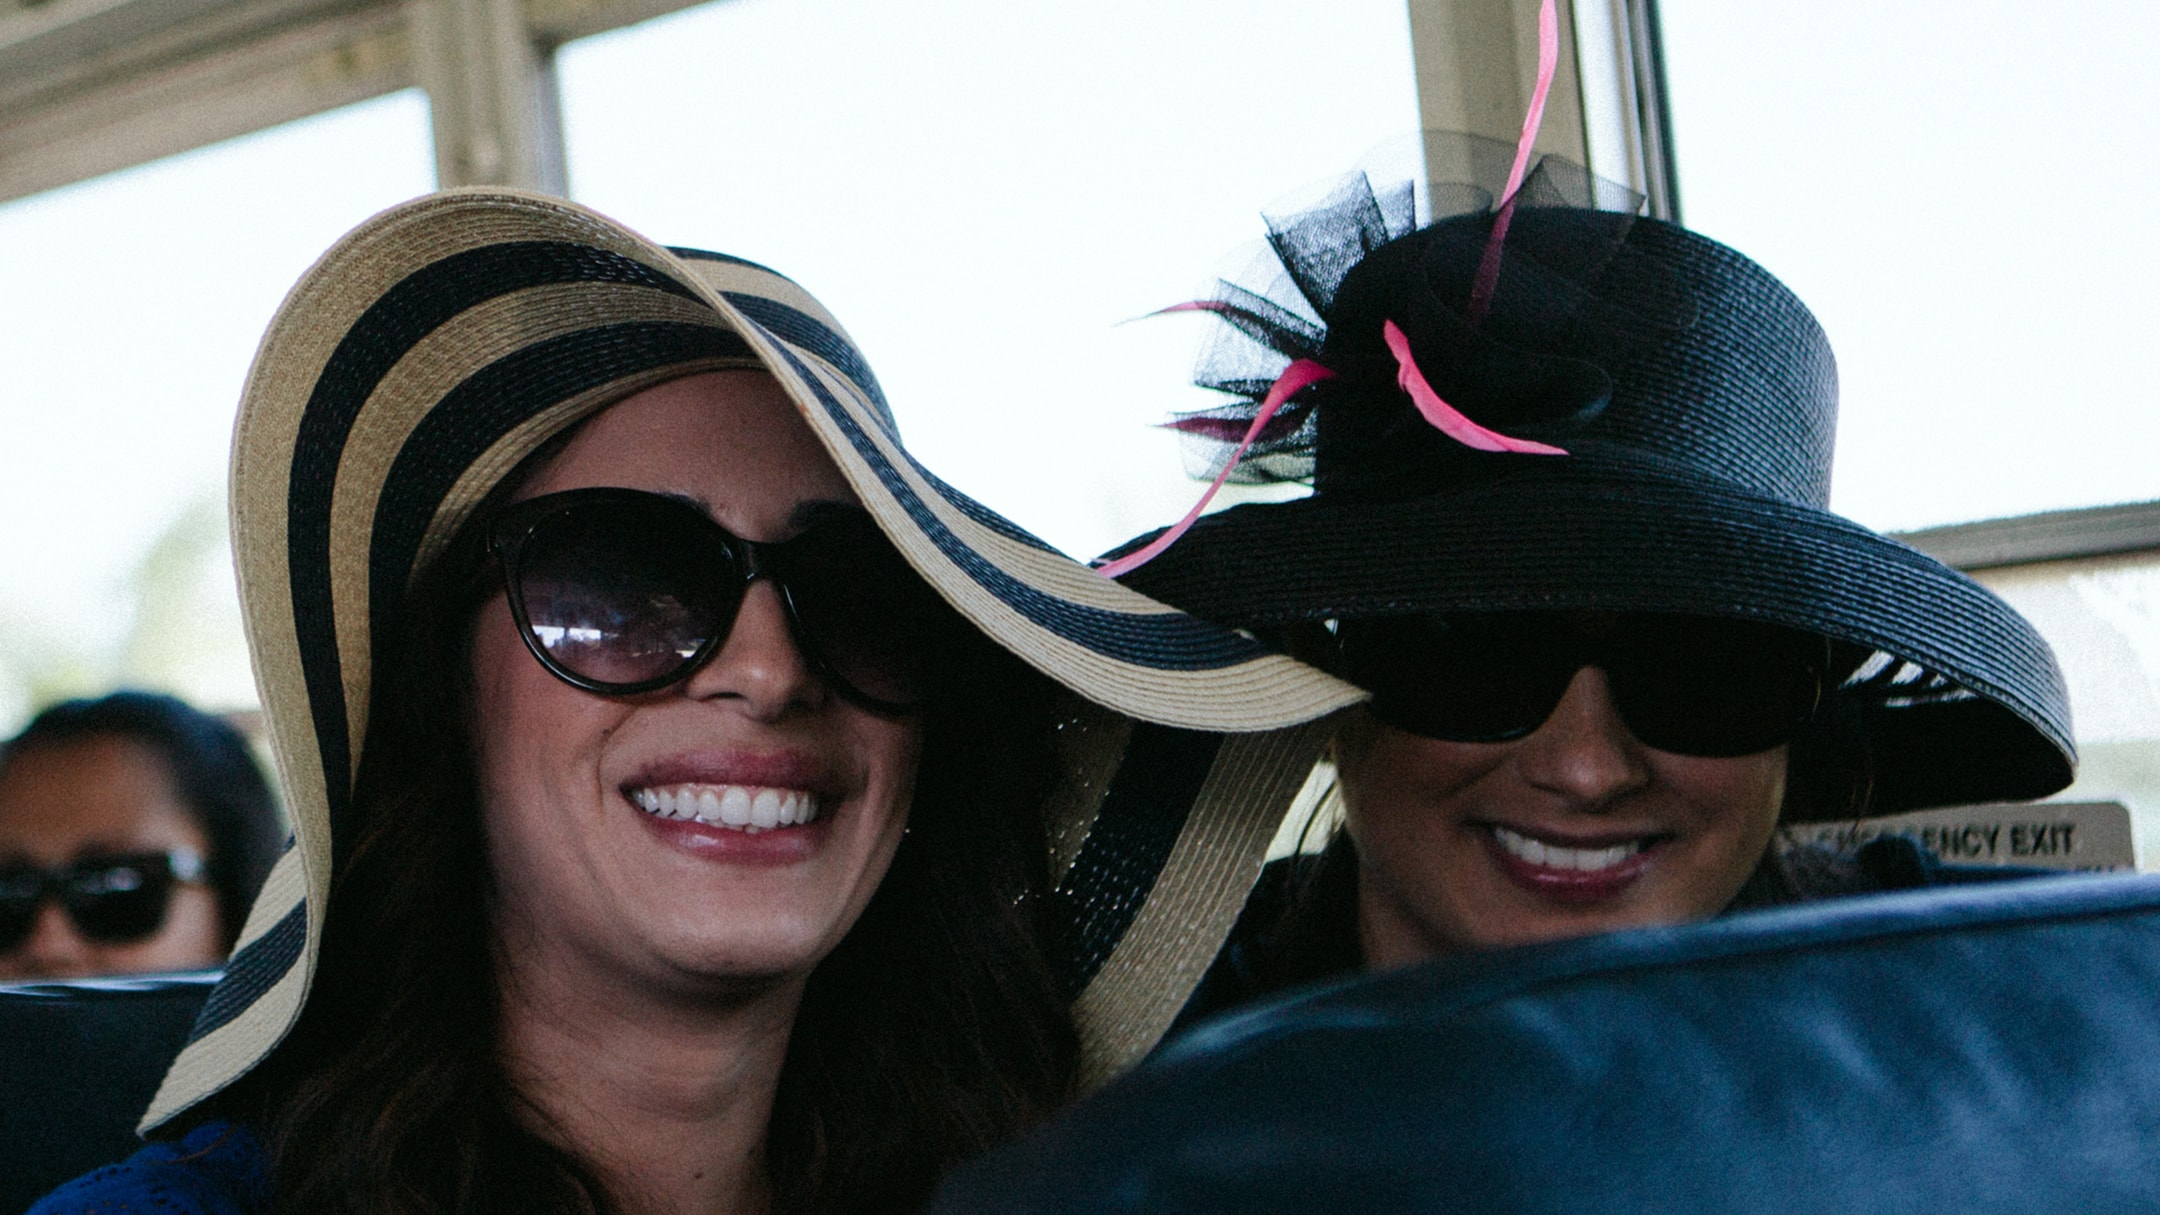 Two women on a bus smiling and wearing floppy hats.